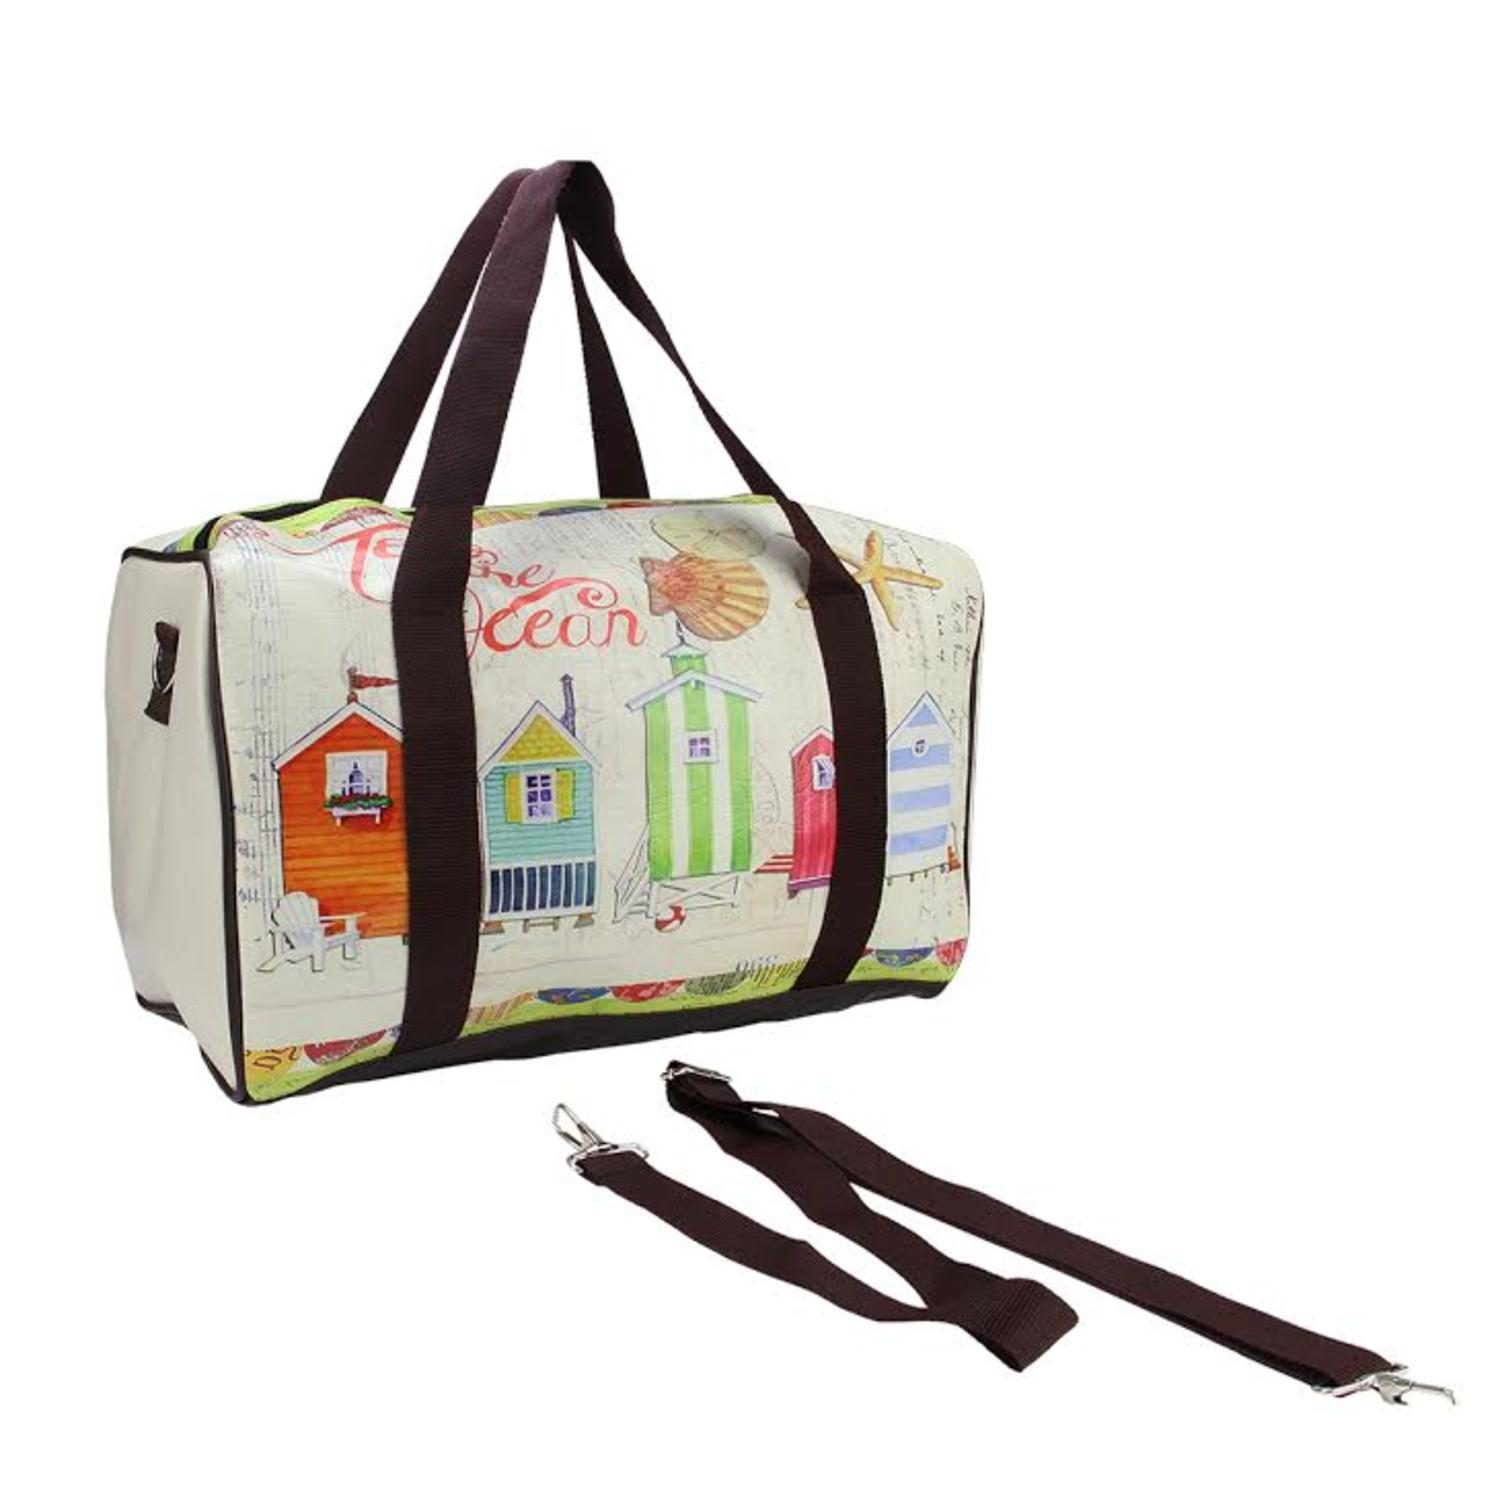 ''16'''' Vintage-Style BEACH House Theme Travel BAG with Handles and Crossbody Strap''